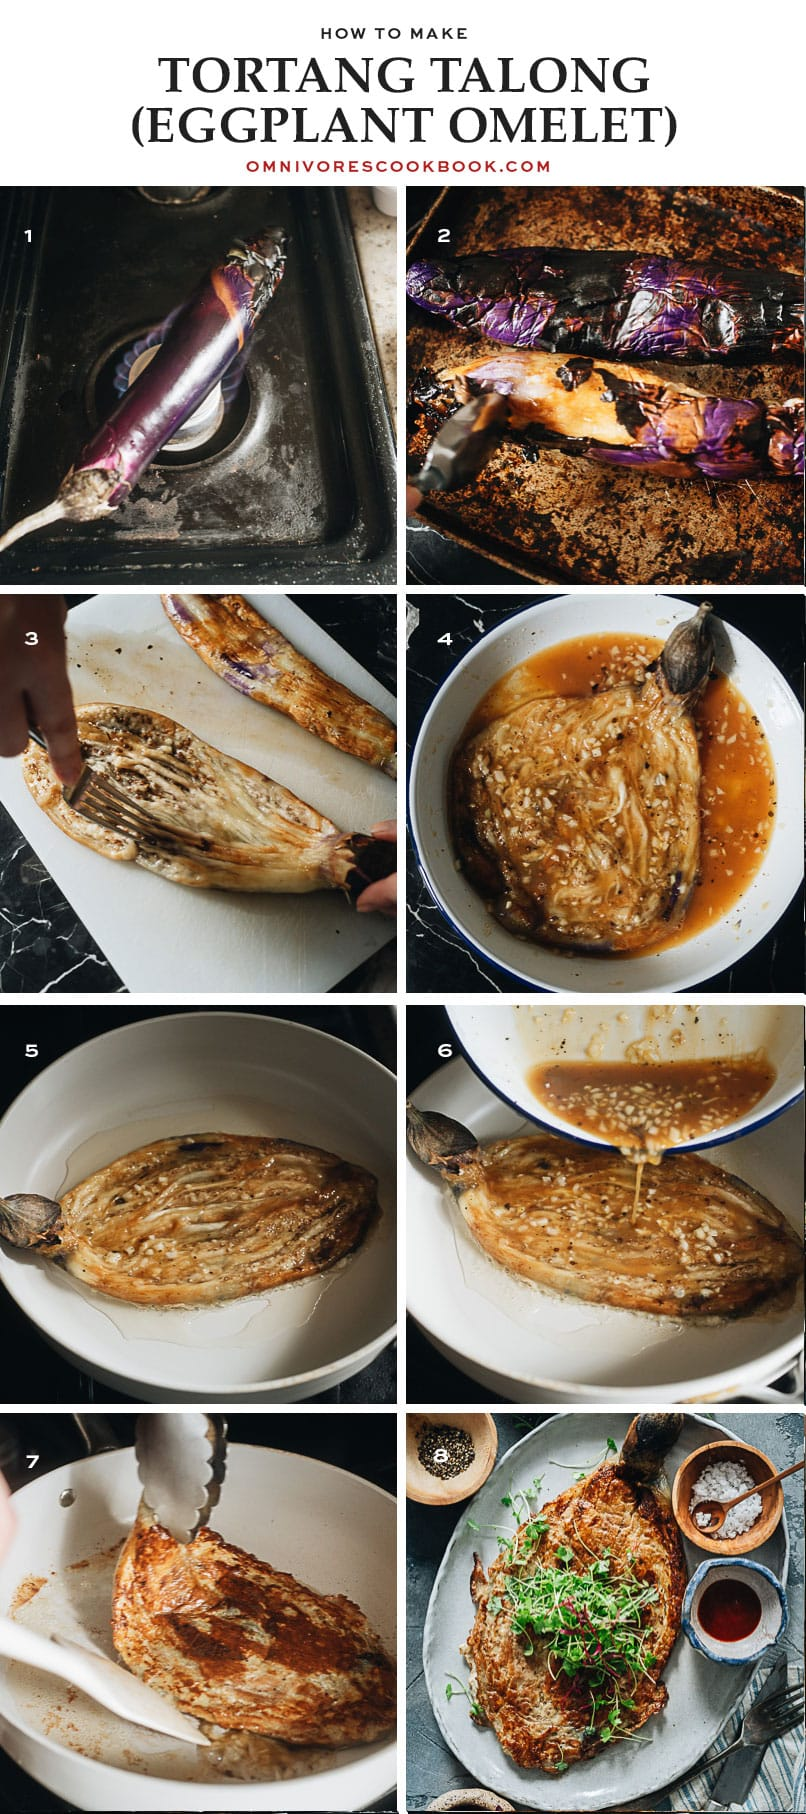 Process of grilling and frying eggplant omelet